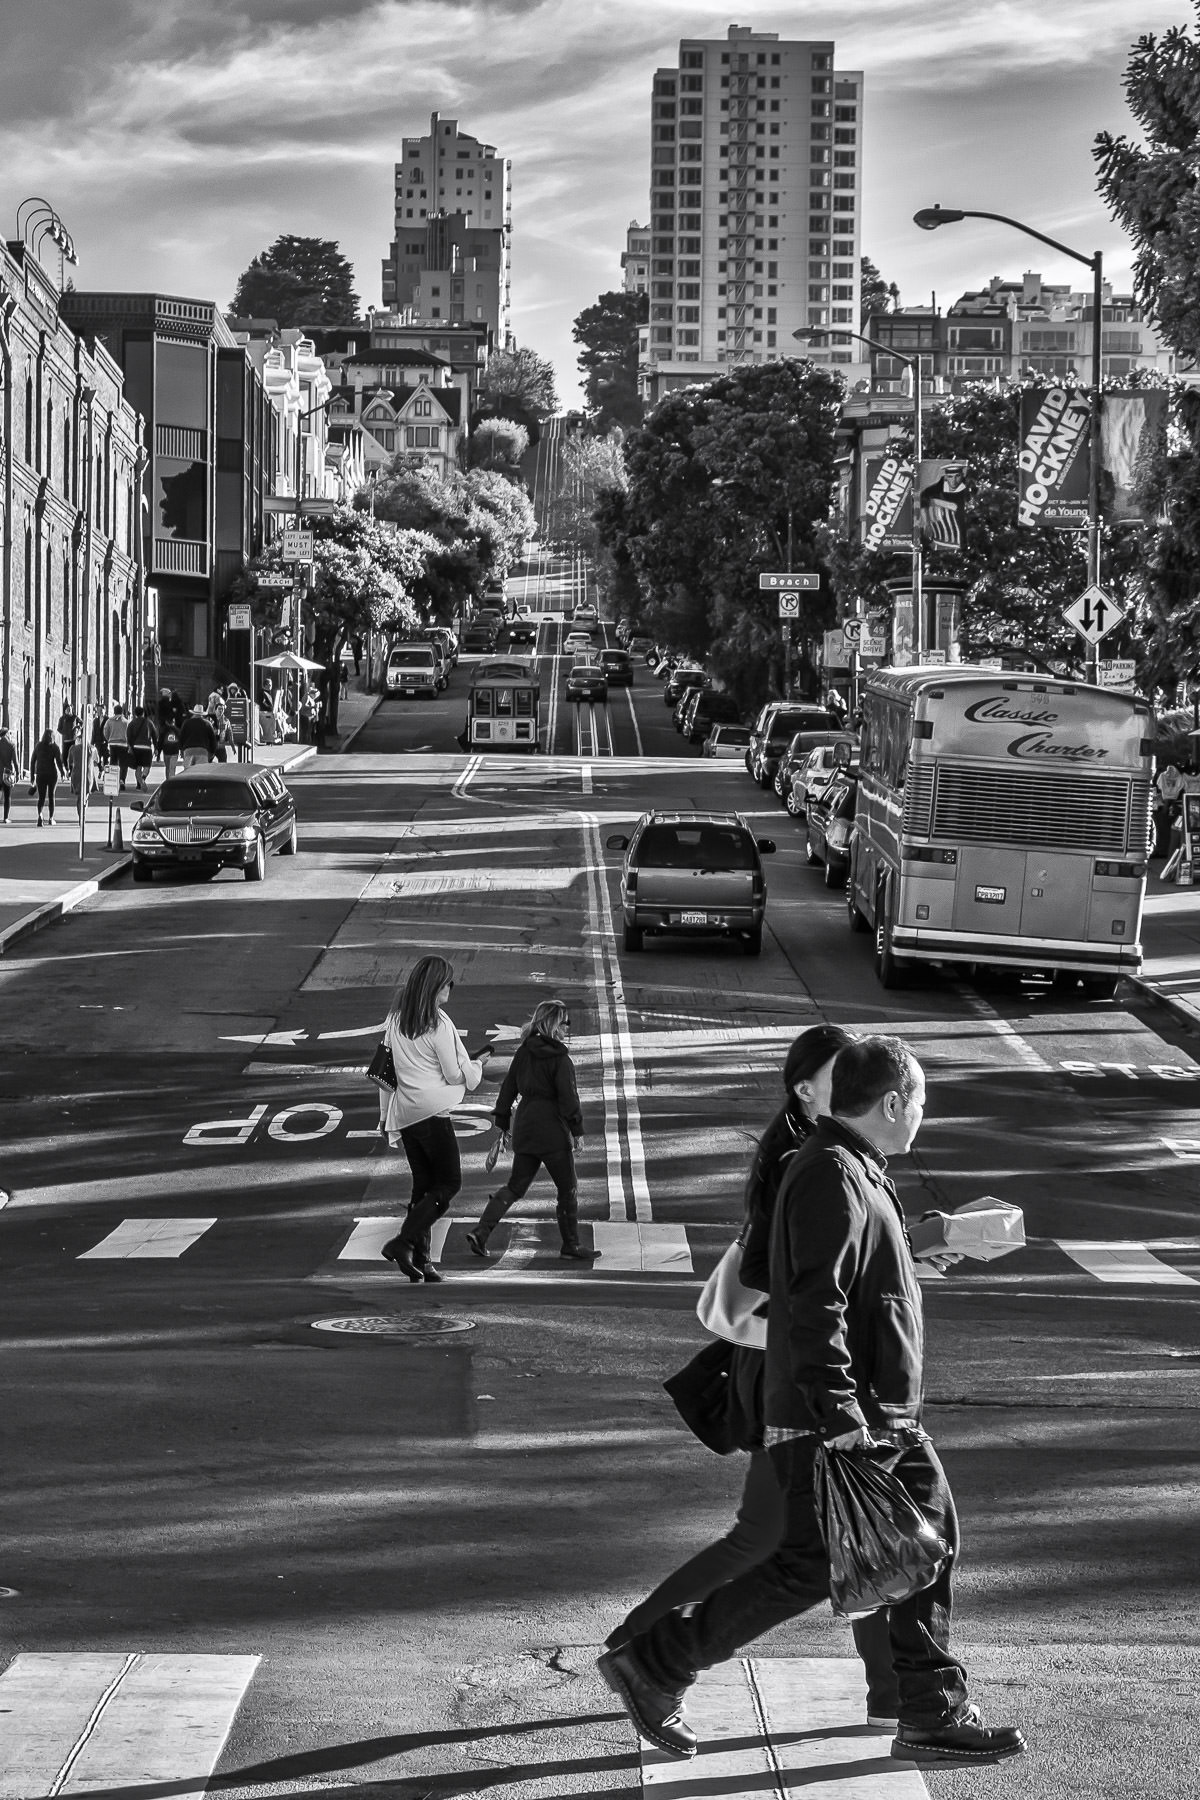 The busy intersection of San Francisco's Hyde Street and Jefferson Street, near the Aquatic Park and Hyde Street Pier.